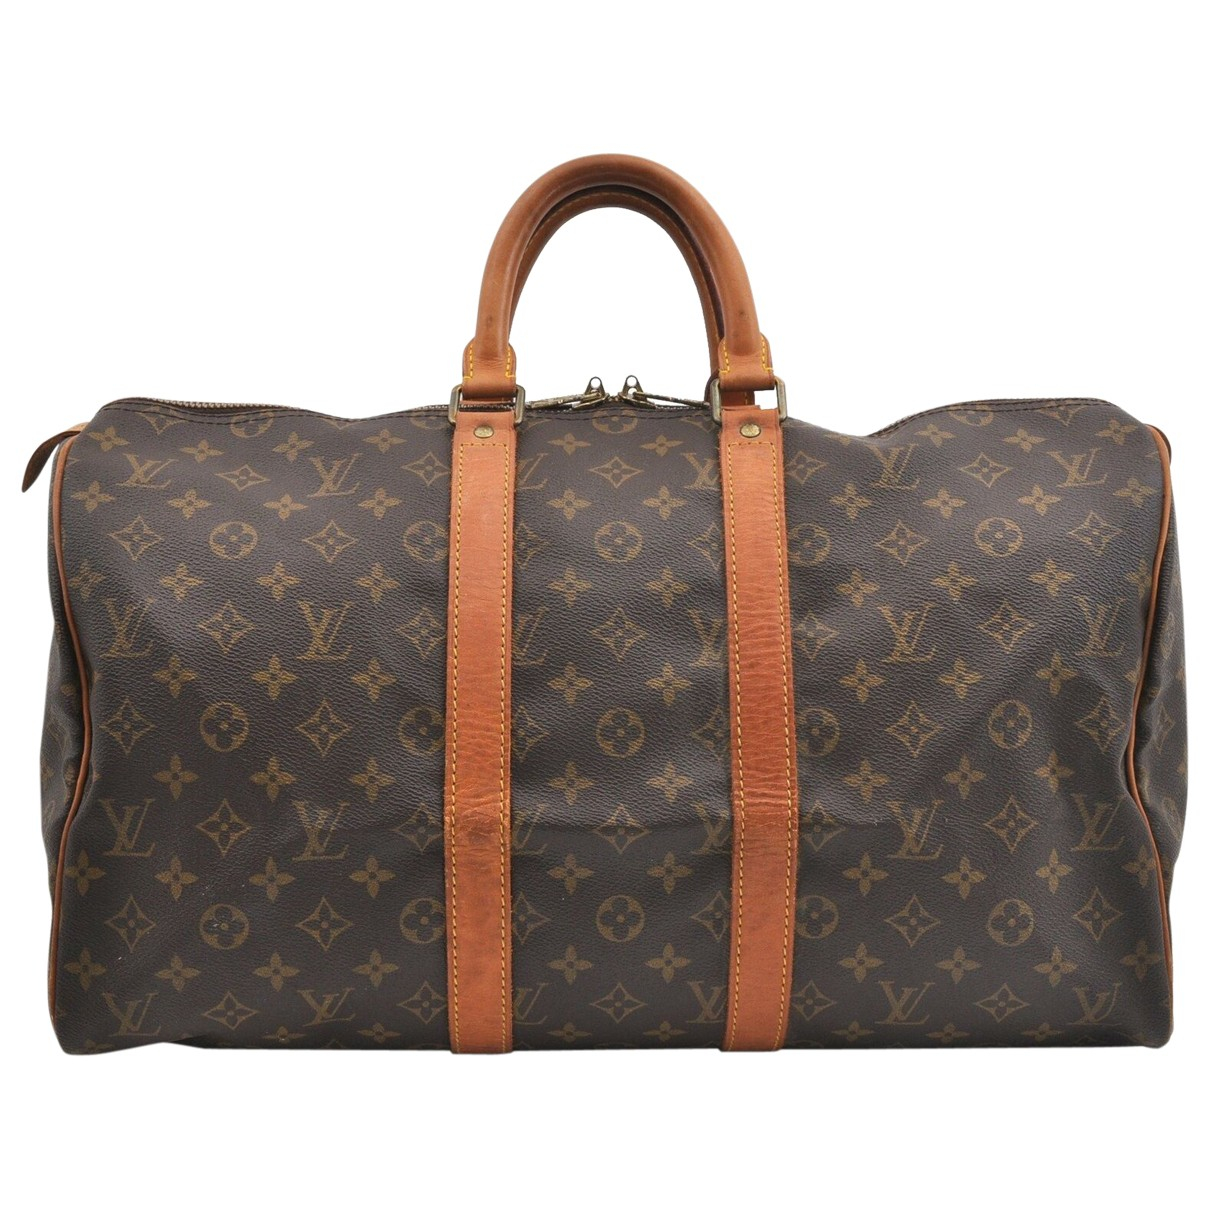 Louis Vuitton Keepall Brown Cloth Travel bag for Women N